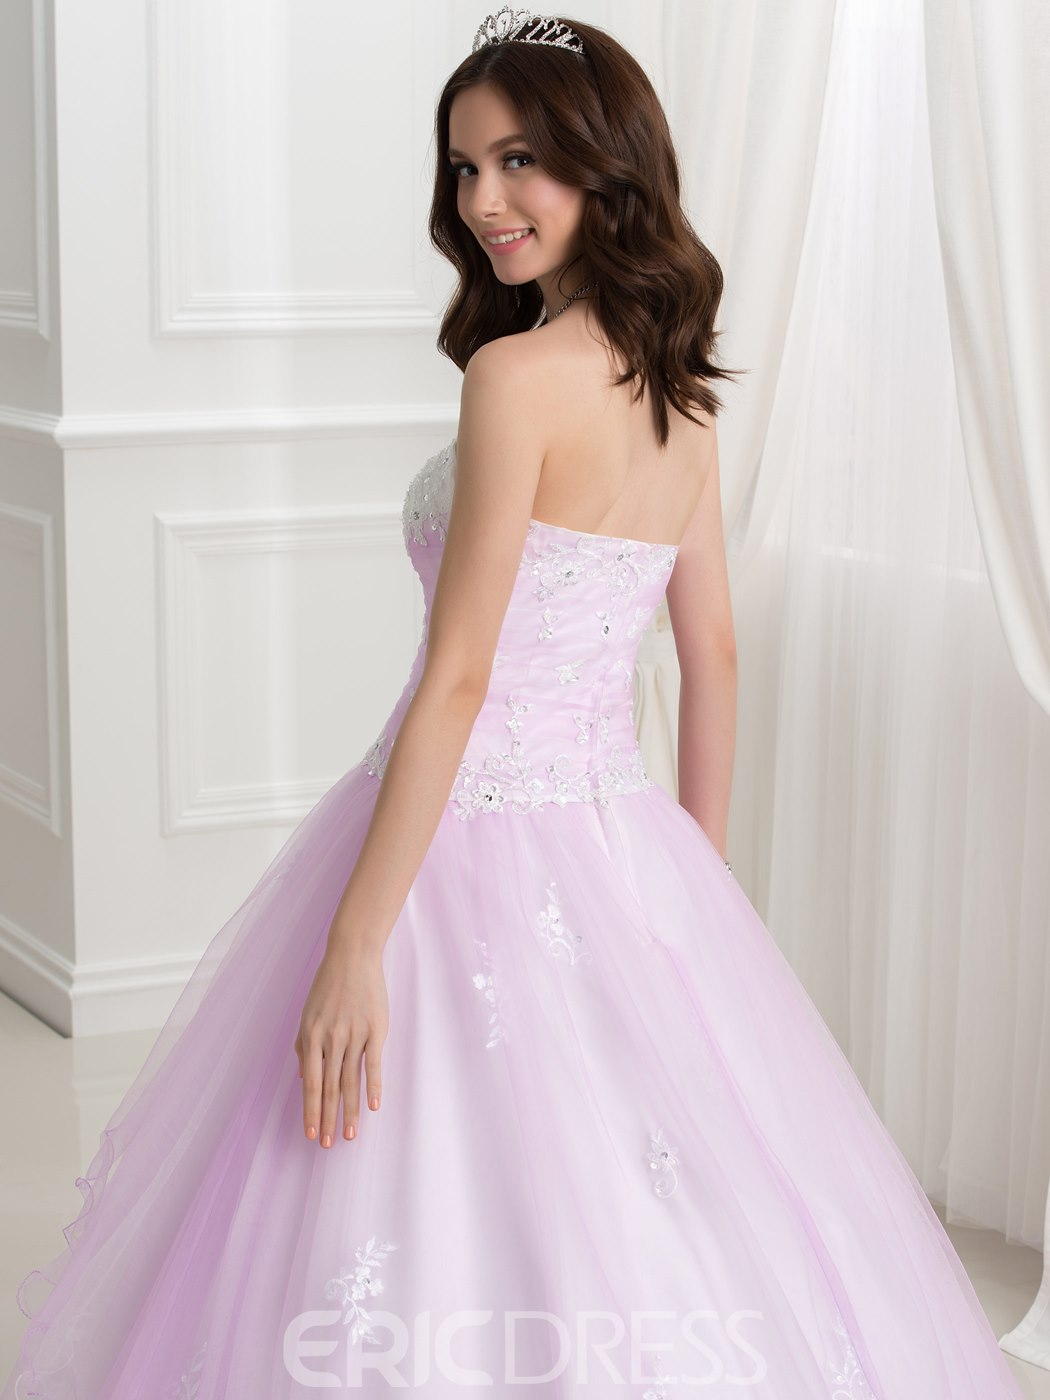 Ericdress Appliques Sequins Strapless Ball Gown Quinceanera Dress